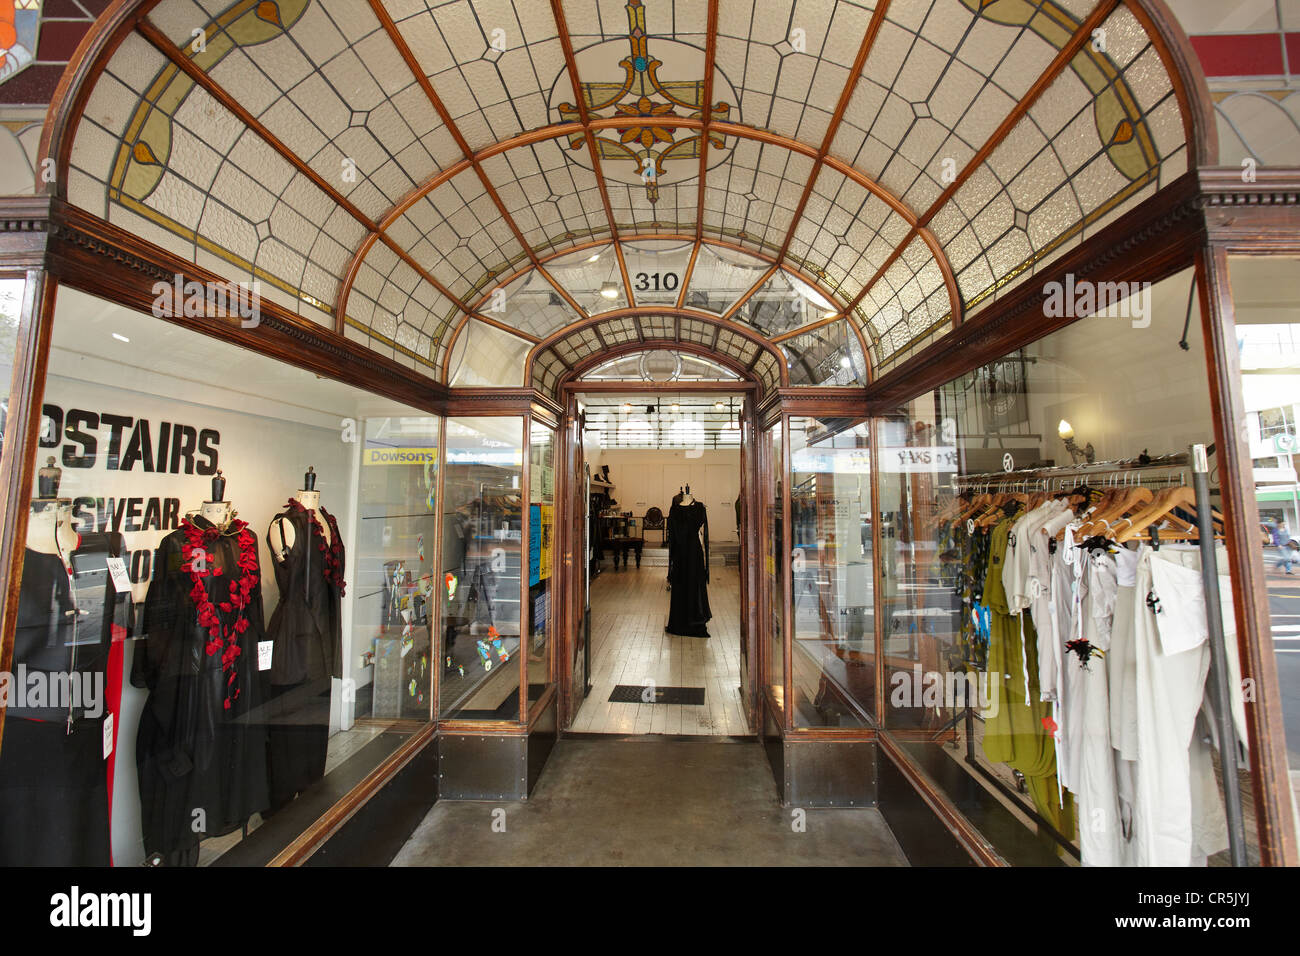 Entrance to Plume fashion boutique, George Street, Dunedin, South Island, New Zealand - Stock Image